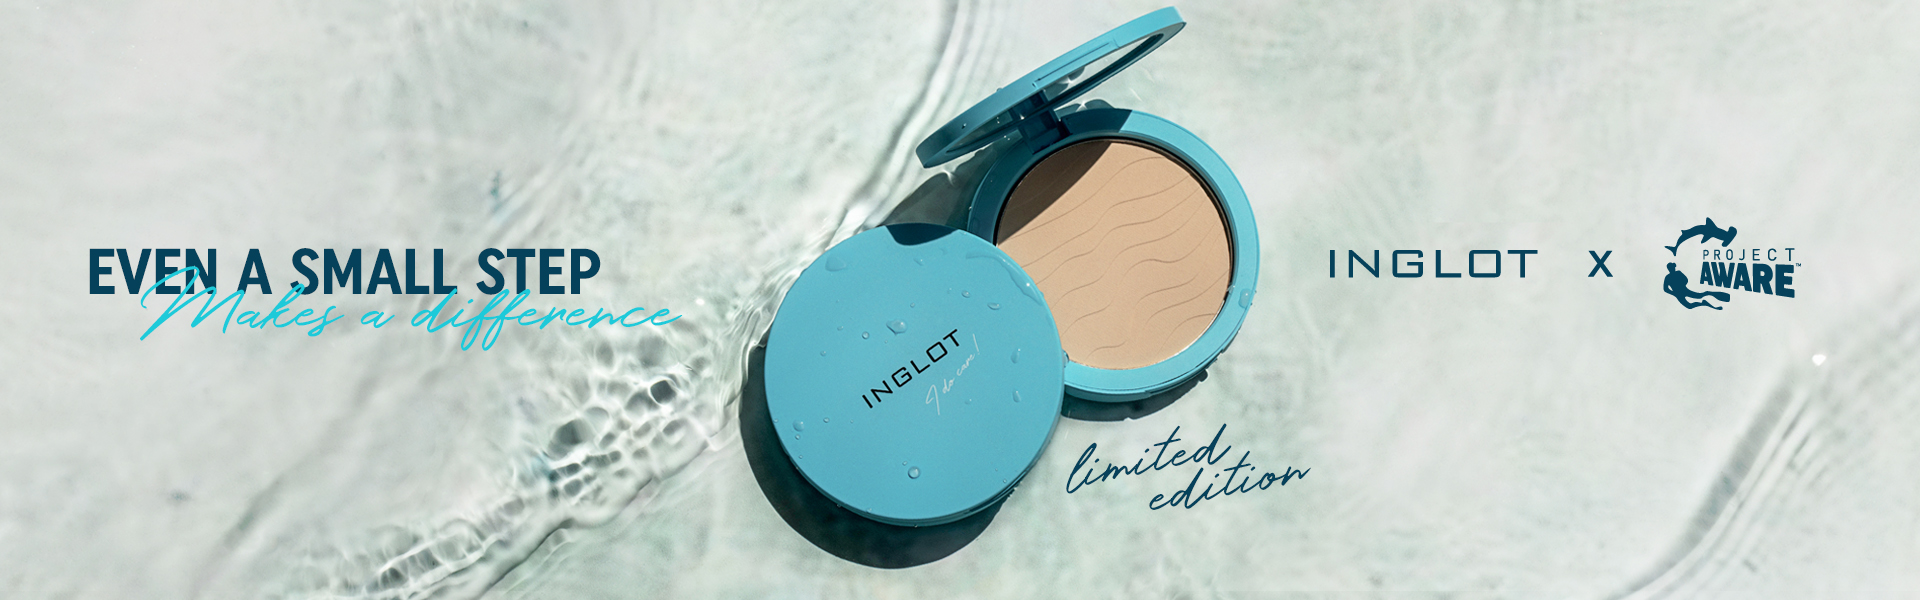 HOME PAGE - INGLOT Cosmetics – Makeup, Skincare, Nails, Accessories